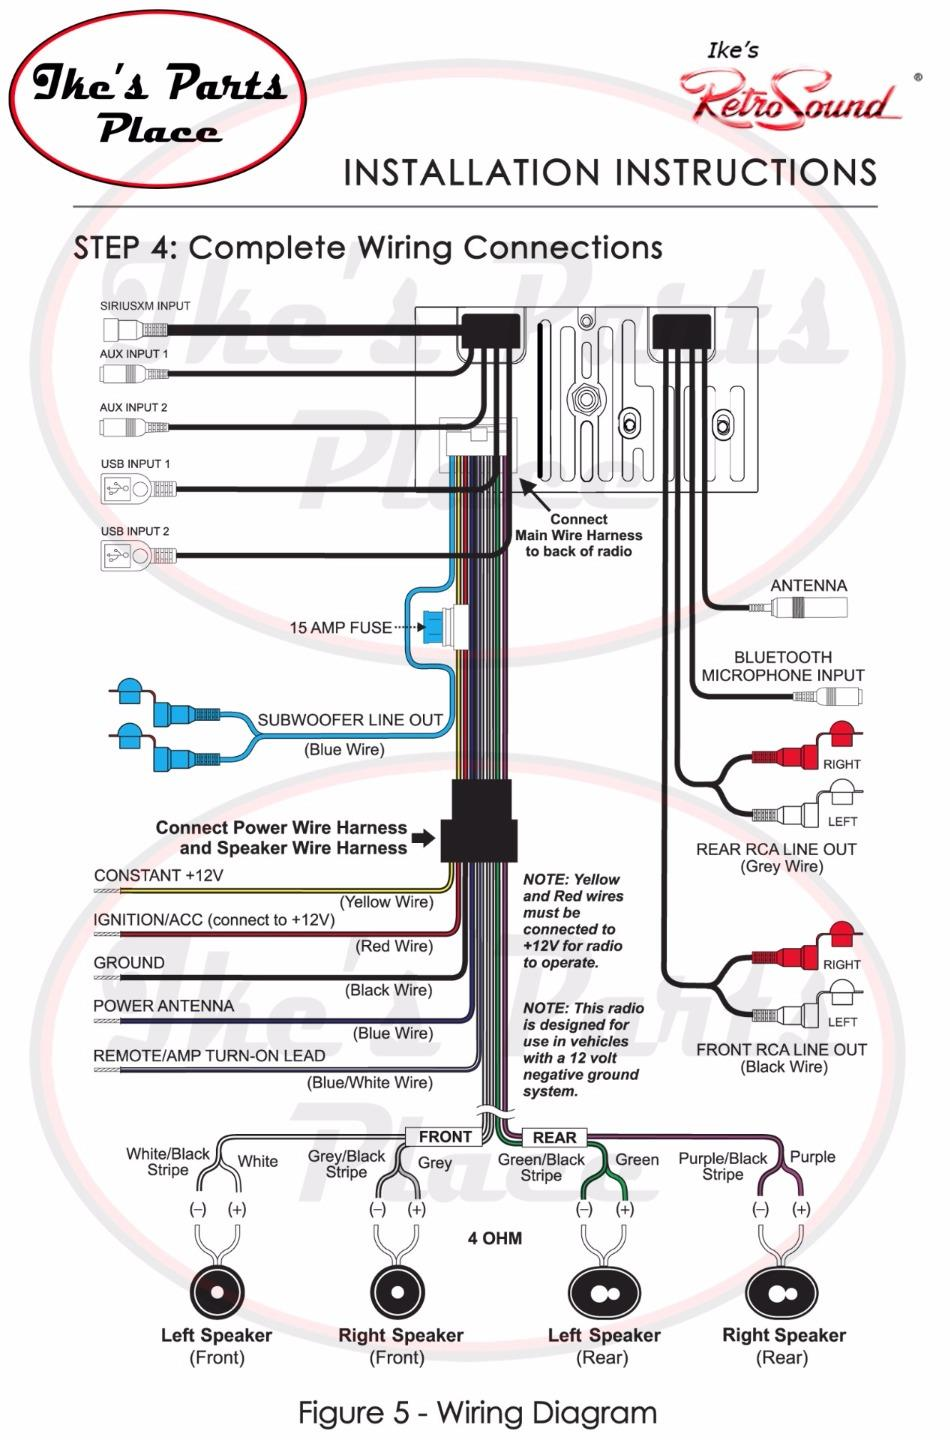 retro sound wiring diagram wiring diagram u2022 rh tinyforge co Schematic Circuit Diagram 3-Way Switch Wiring Diagram